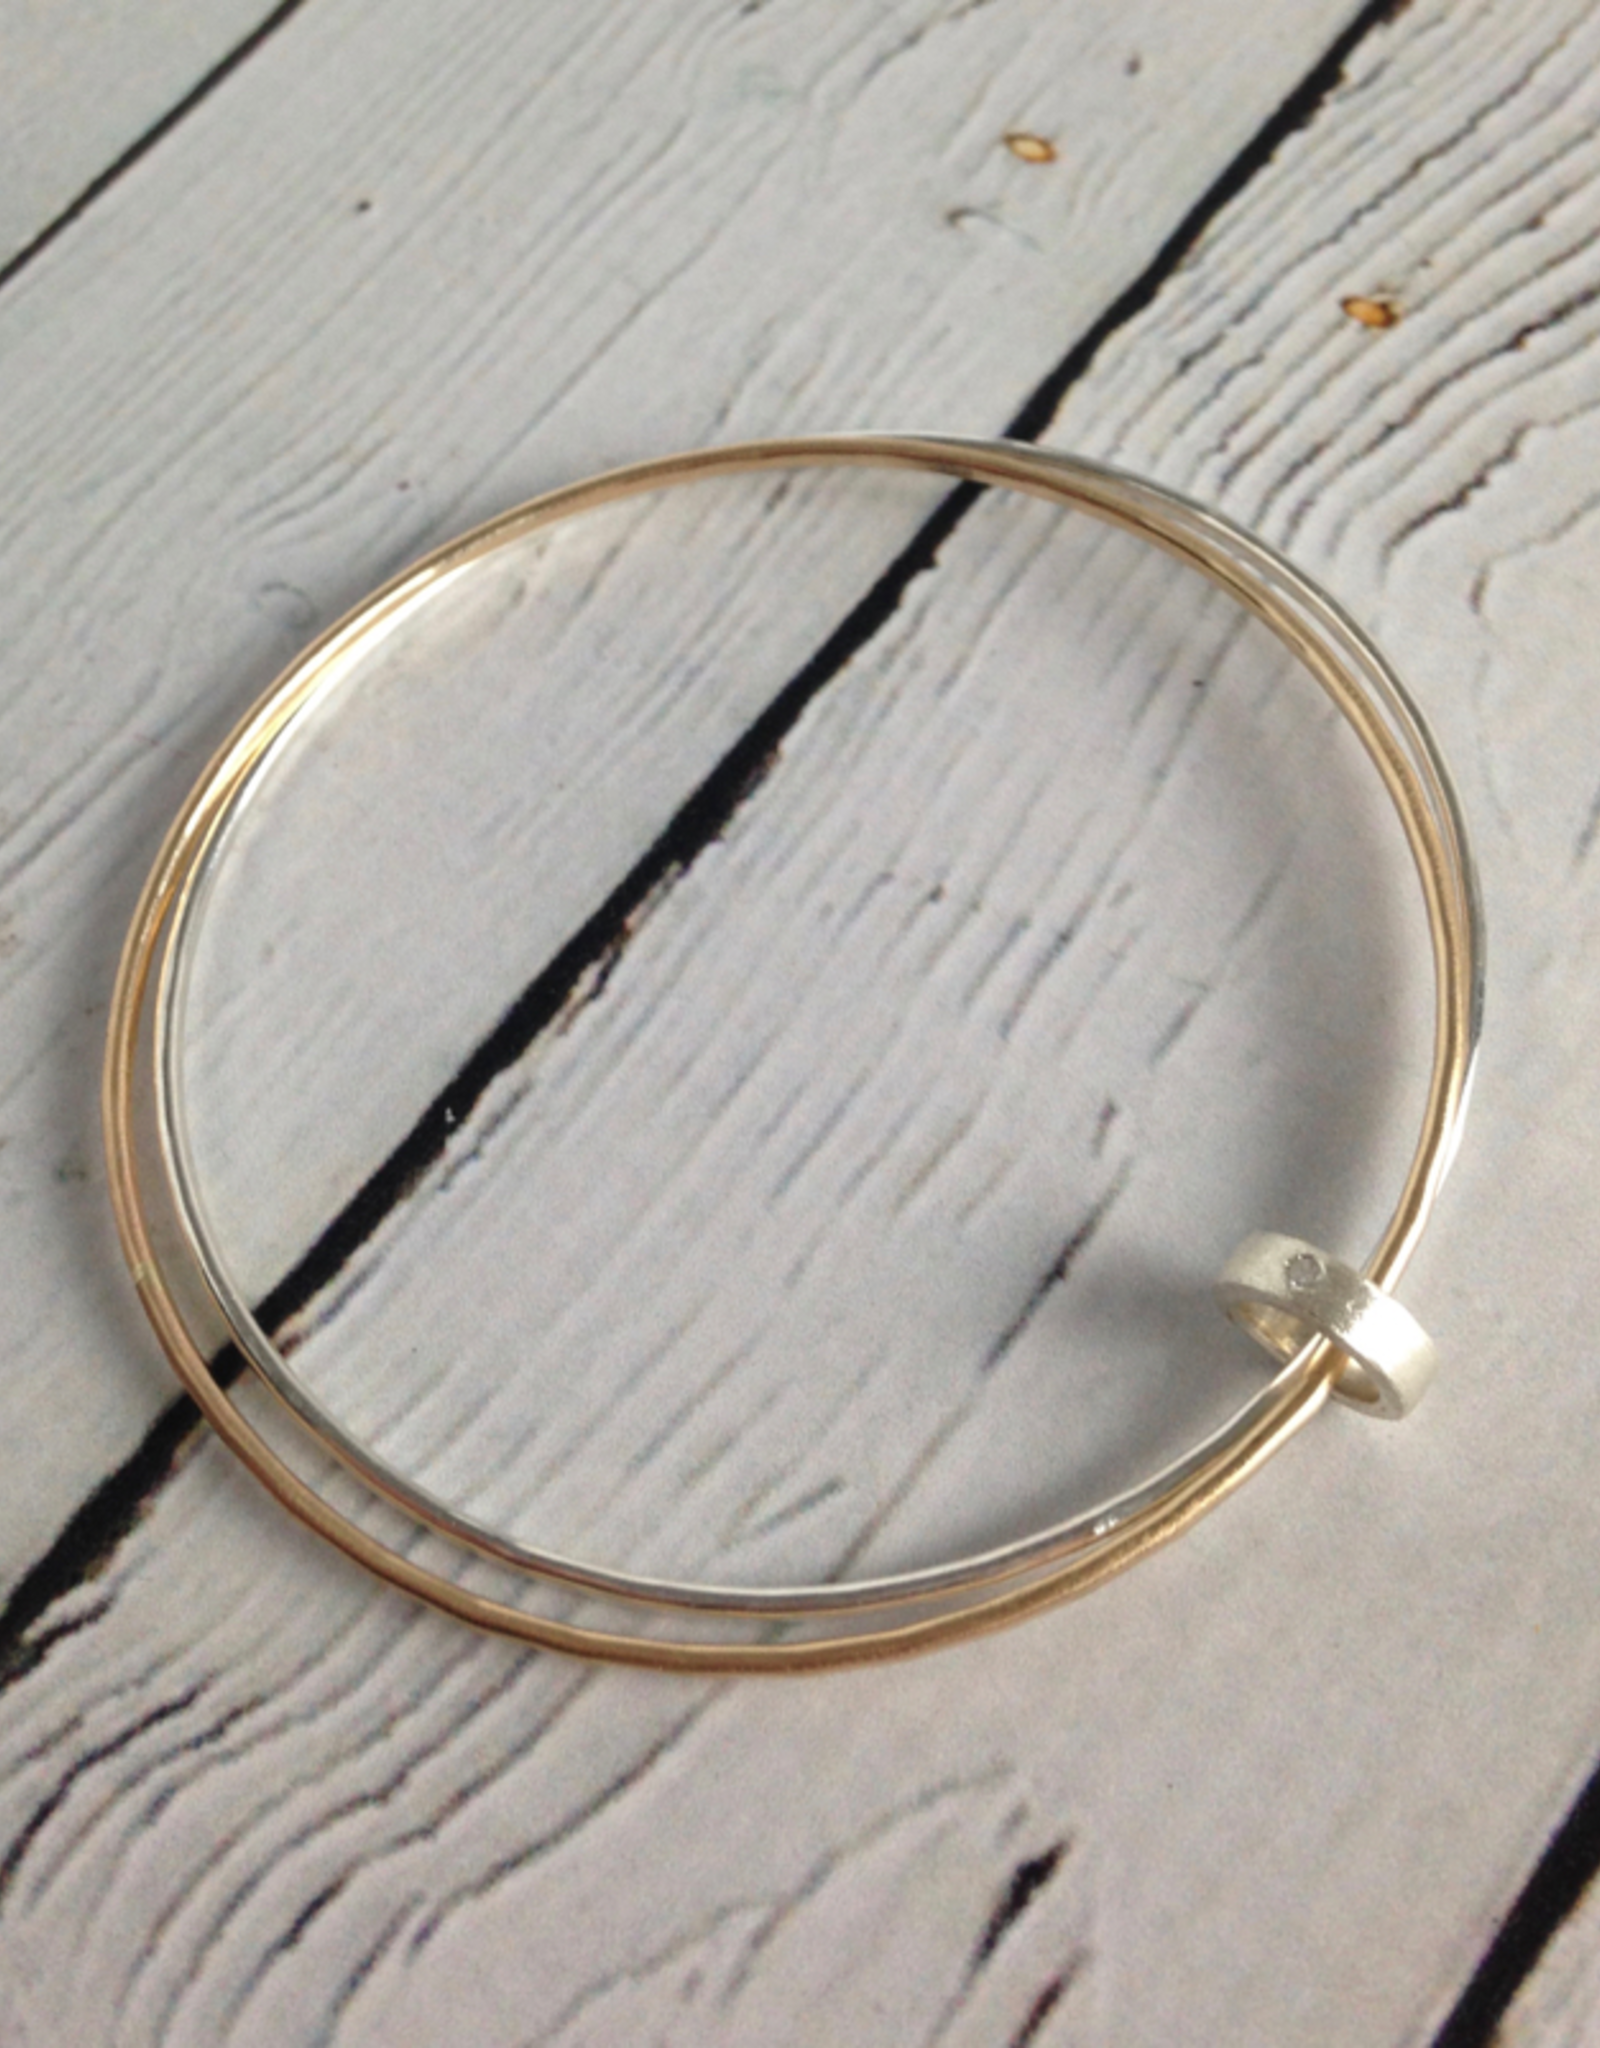 Handmade Hammered 14k GF and Sterling Silver Bangle Bracelet set with CZ connector